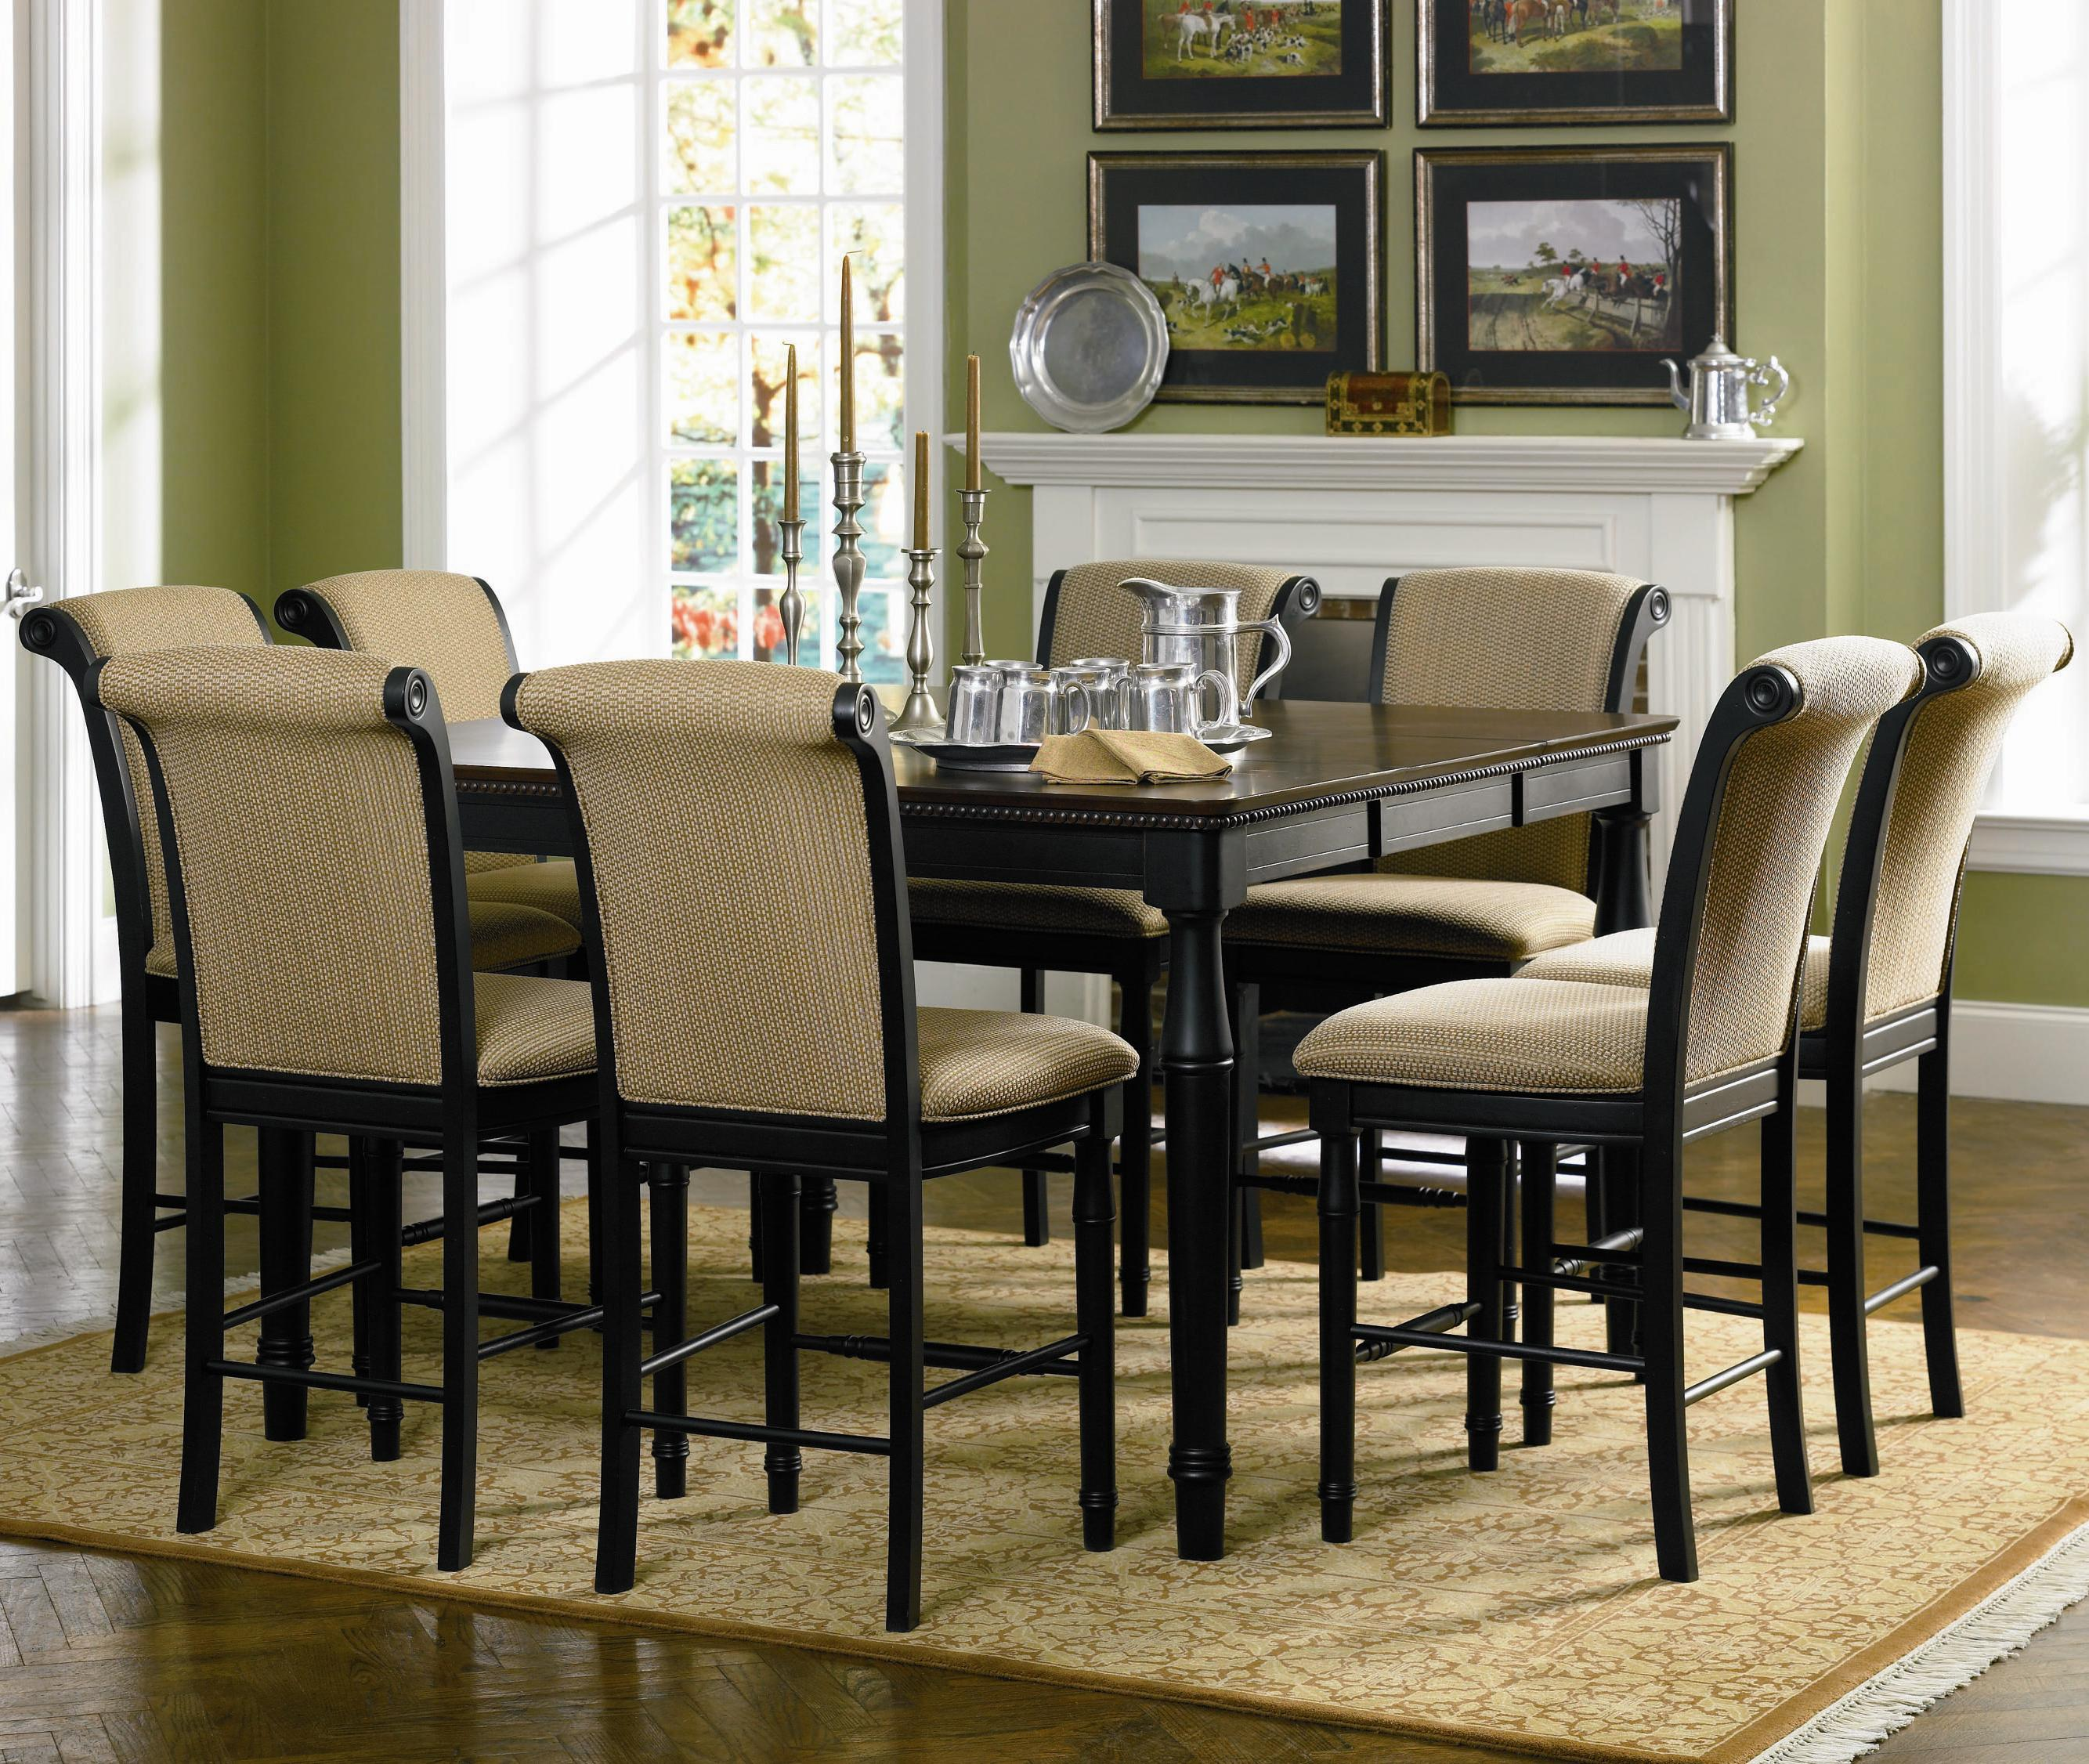 Coaster Cabrillo 9 Piece Counter Height Dining Set   Item Number: 101828+8X9